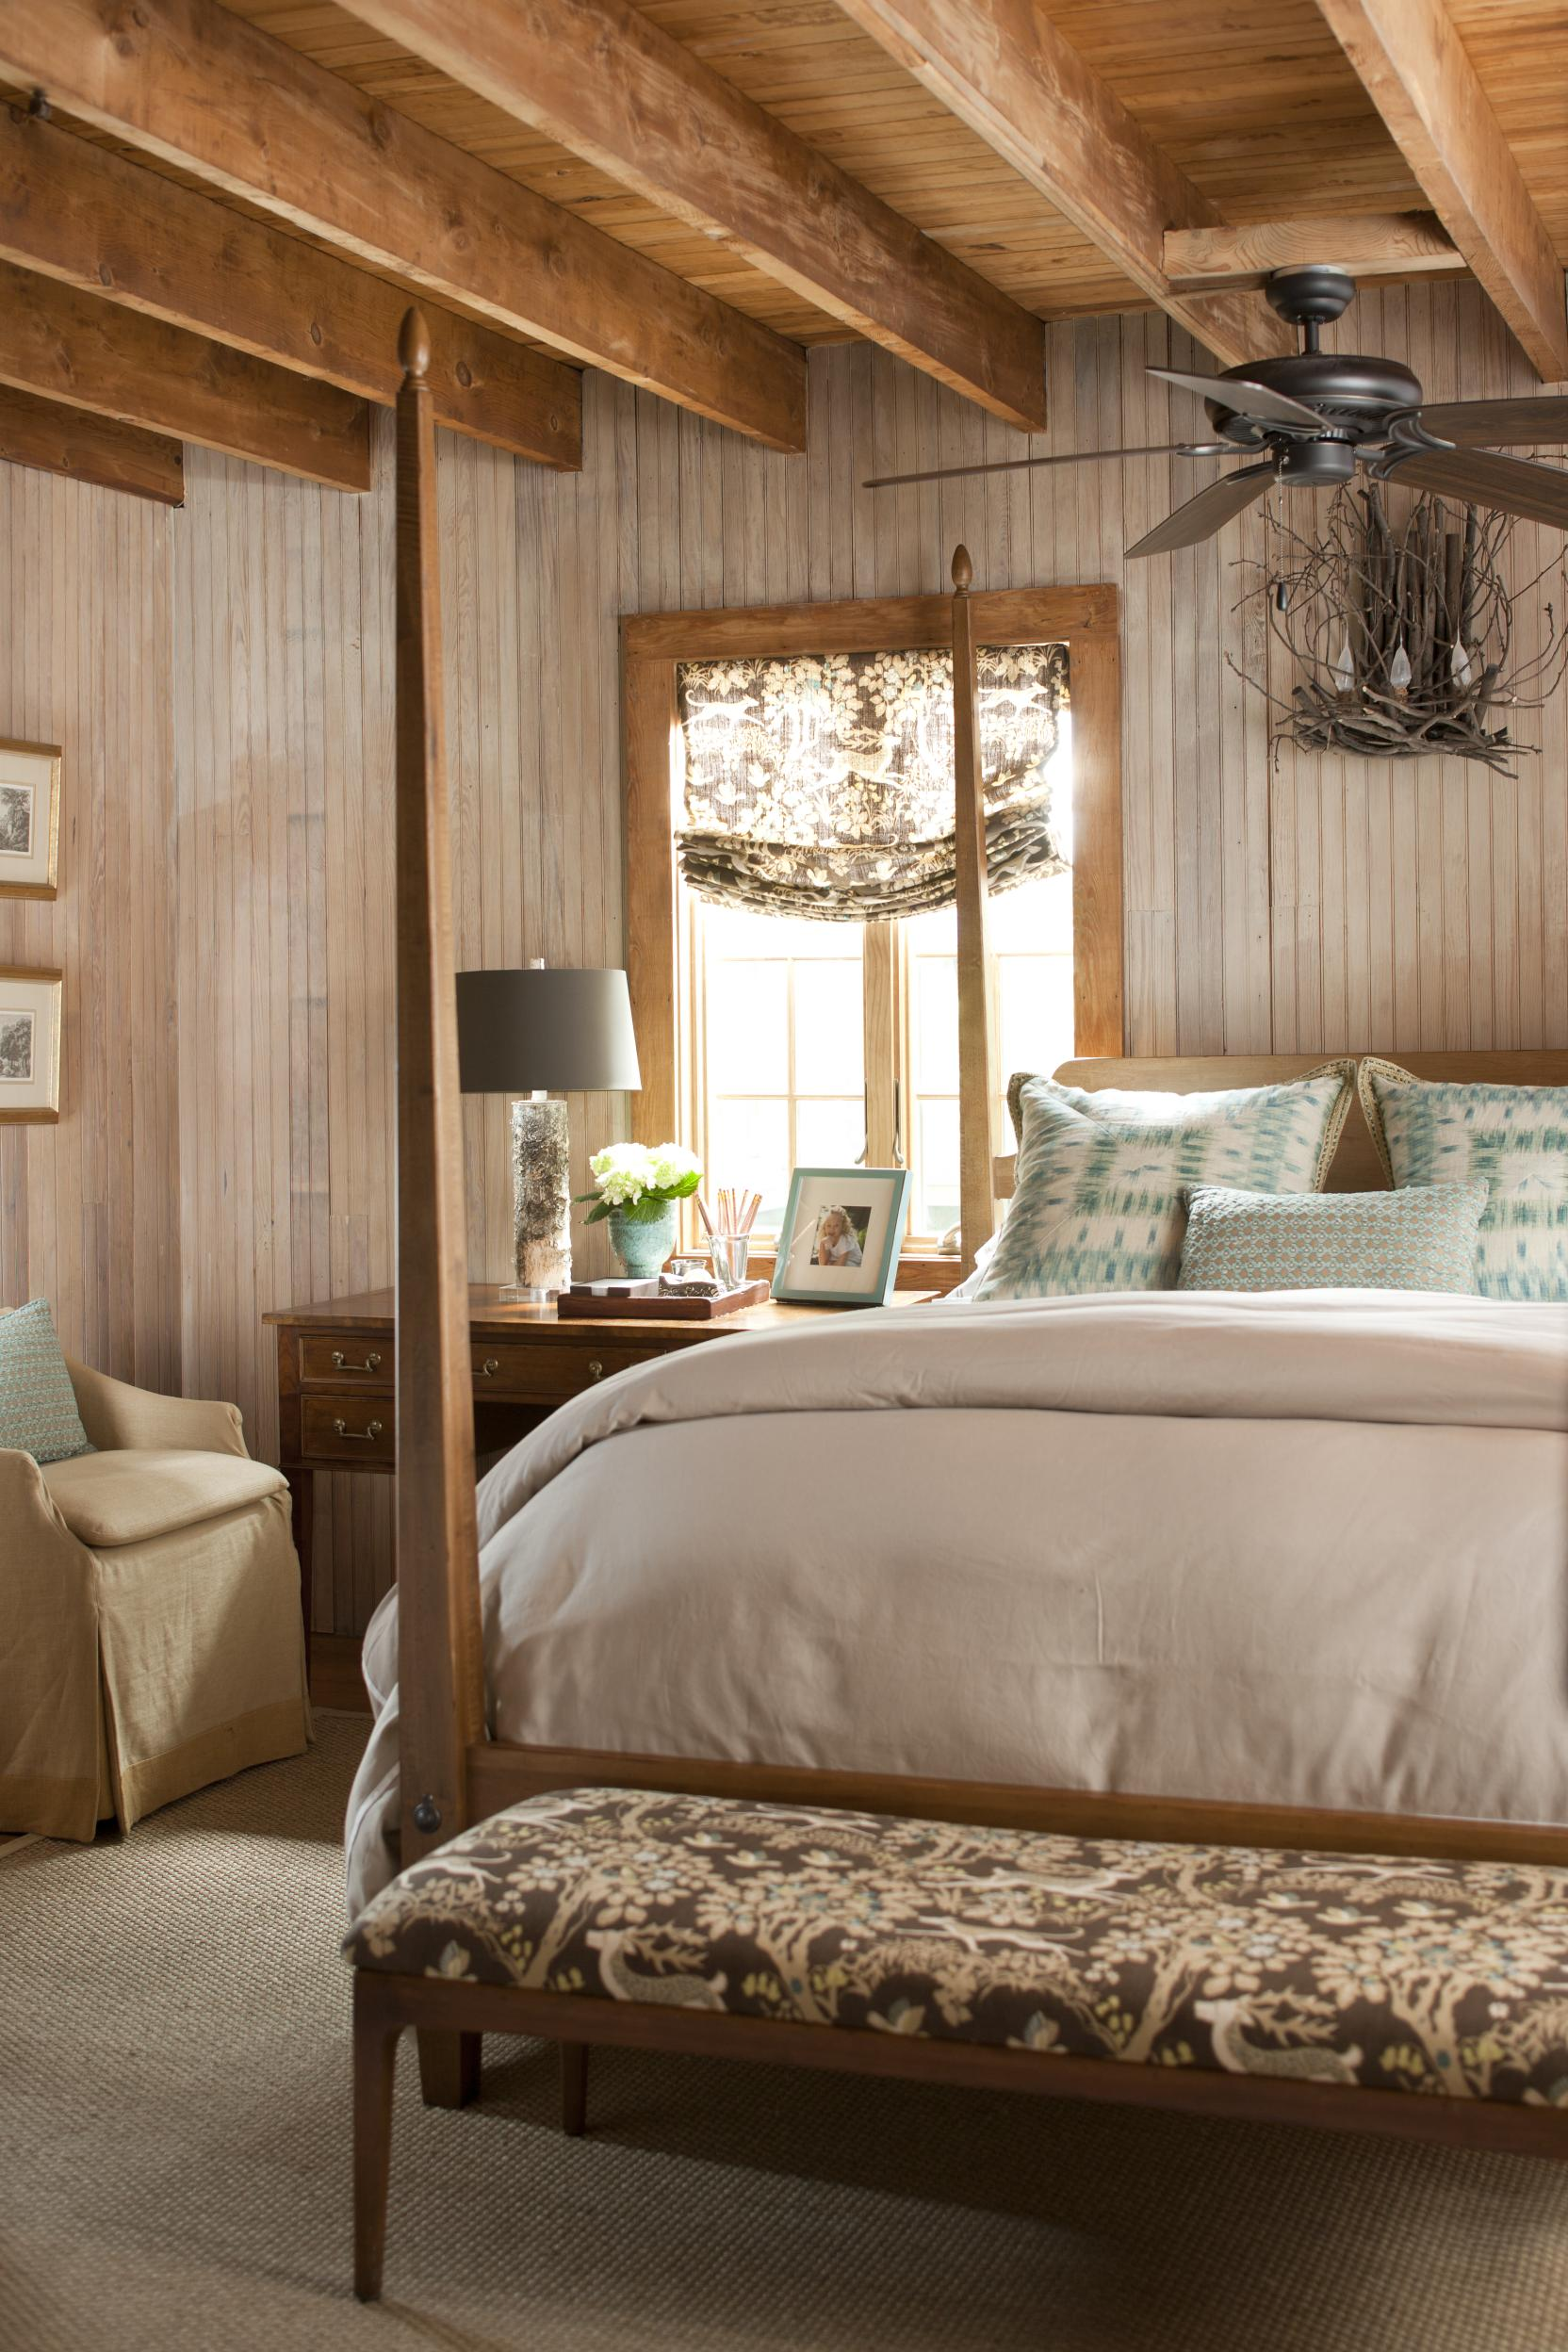 Elegant Romantic Bedrooms: Bedrooms: Rustic & Romantic